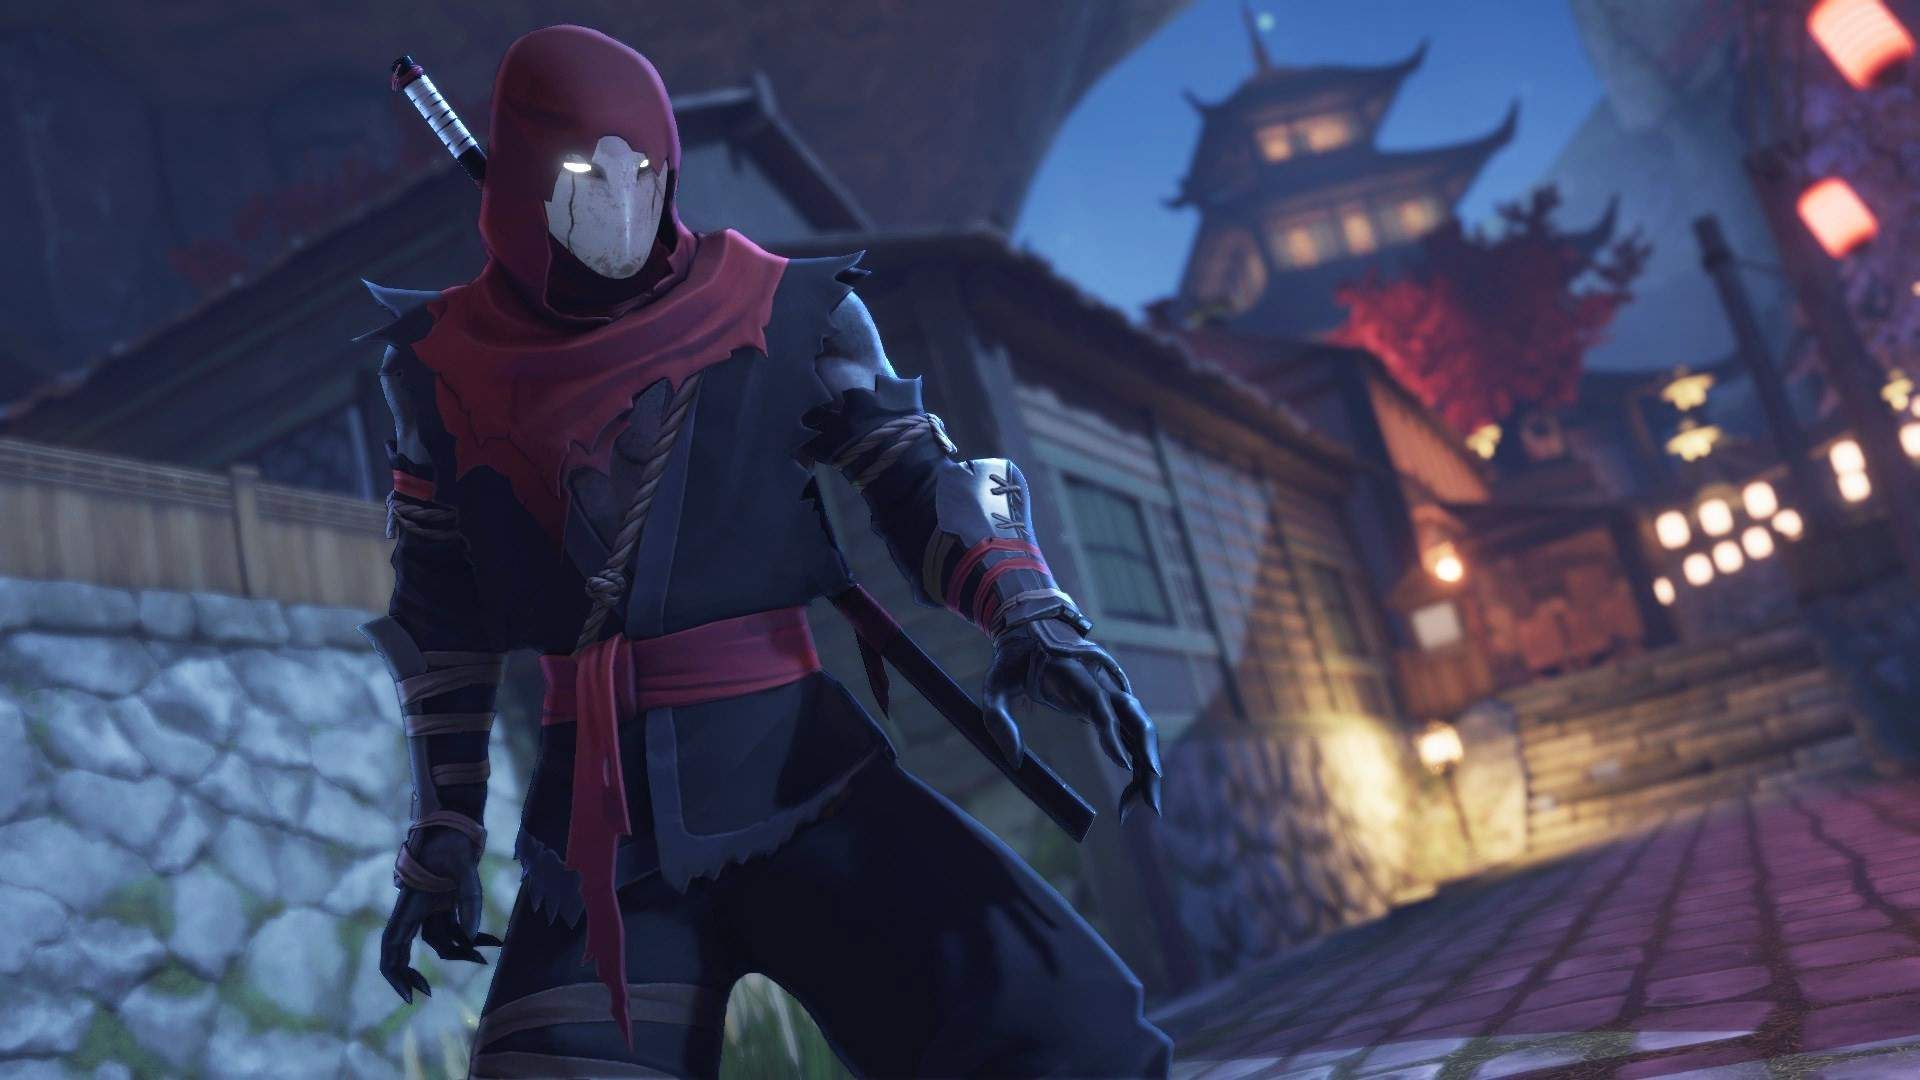 Aragami 2 – September 17 - Optimized for Xbox Series X S ● Smart Delivery